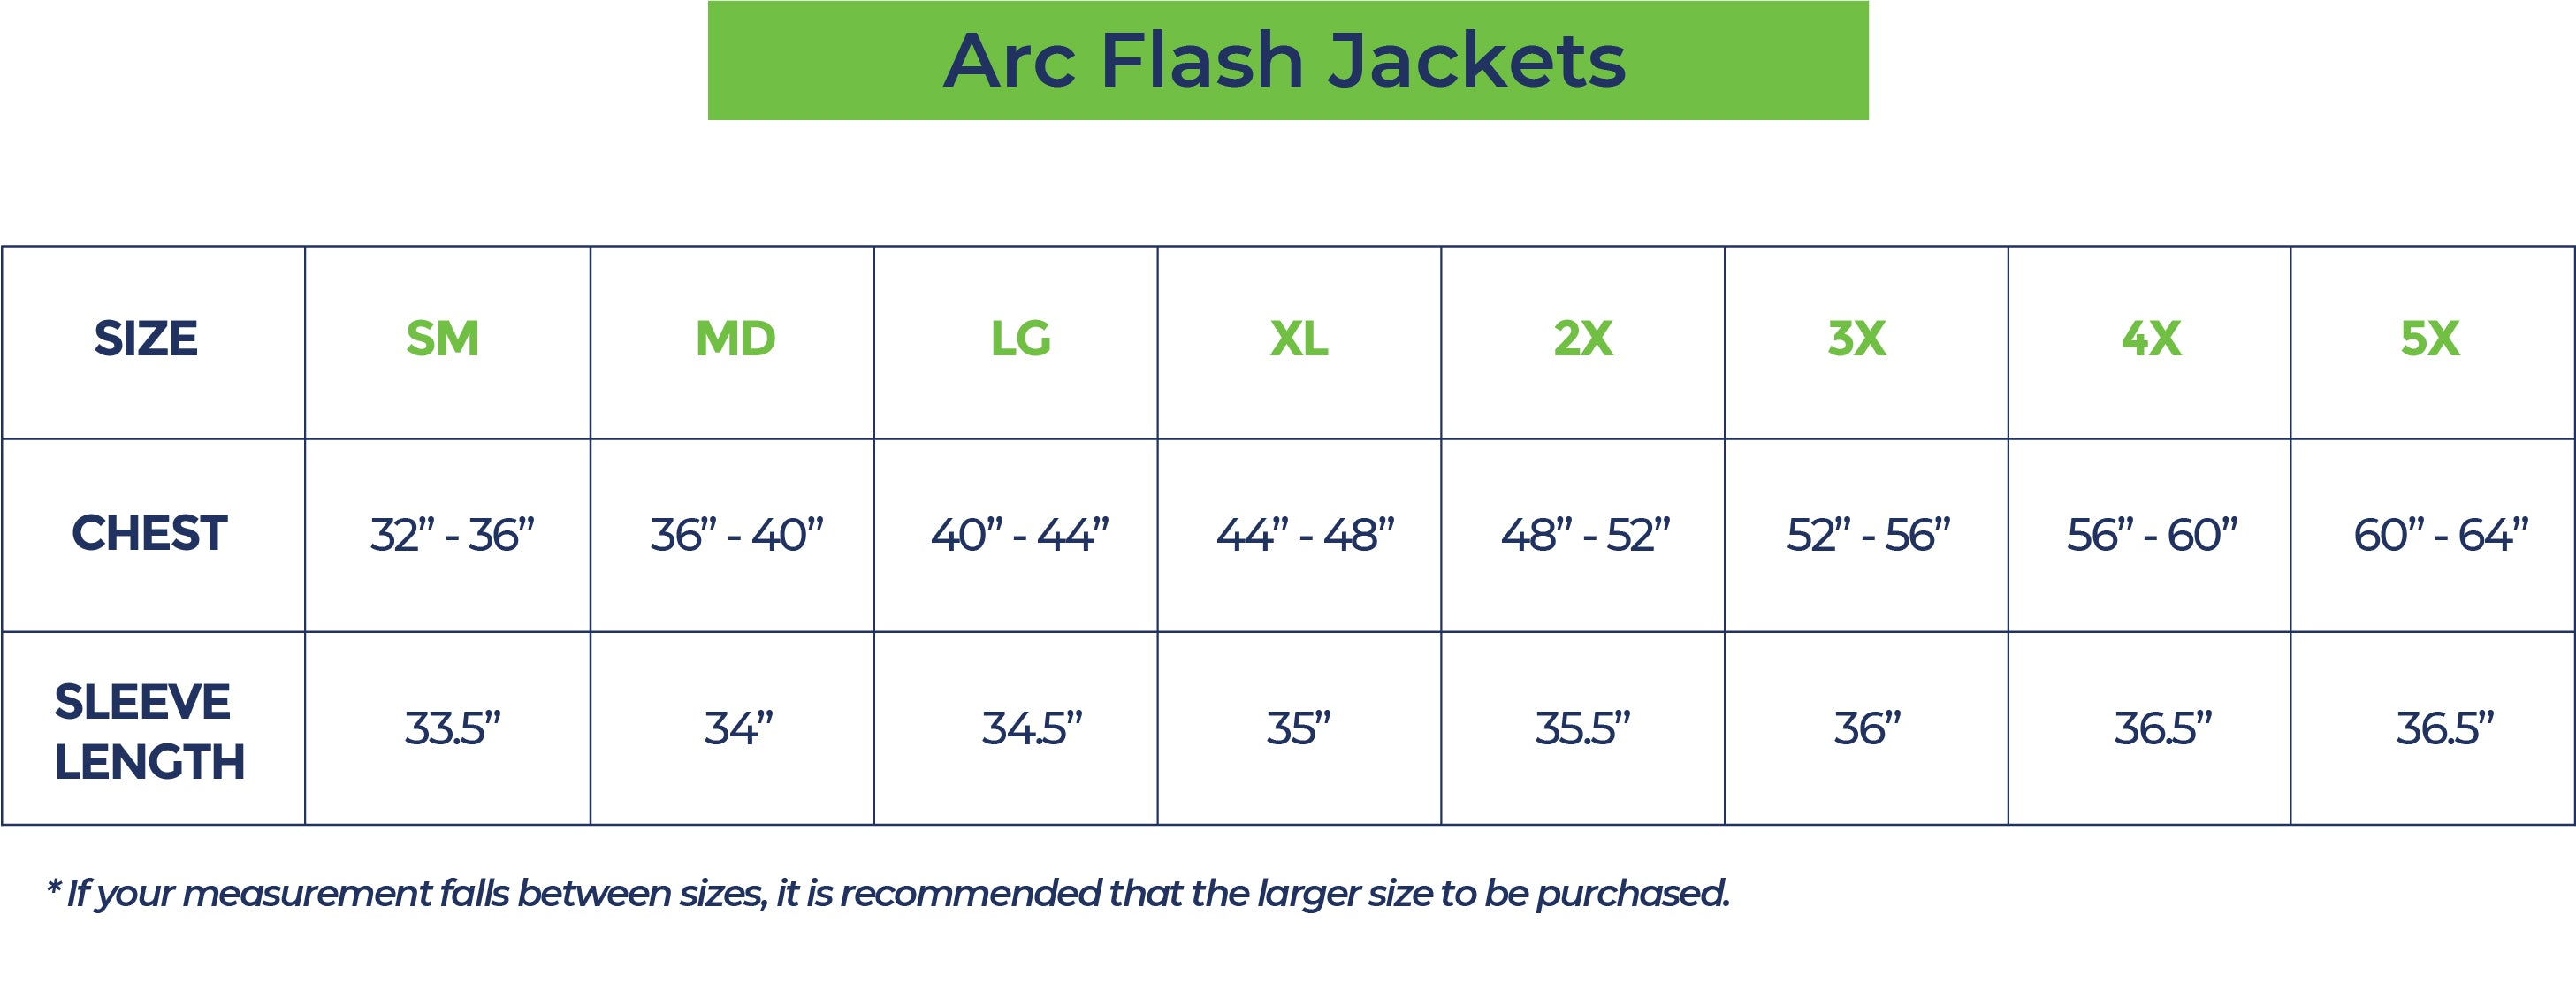 Arc Flash Jackets Sizing Chart